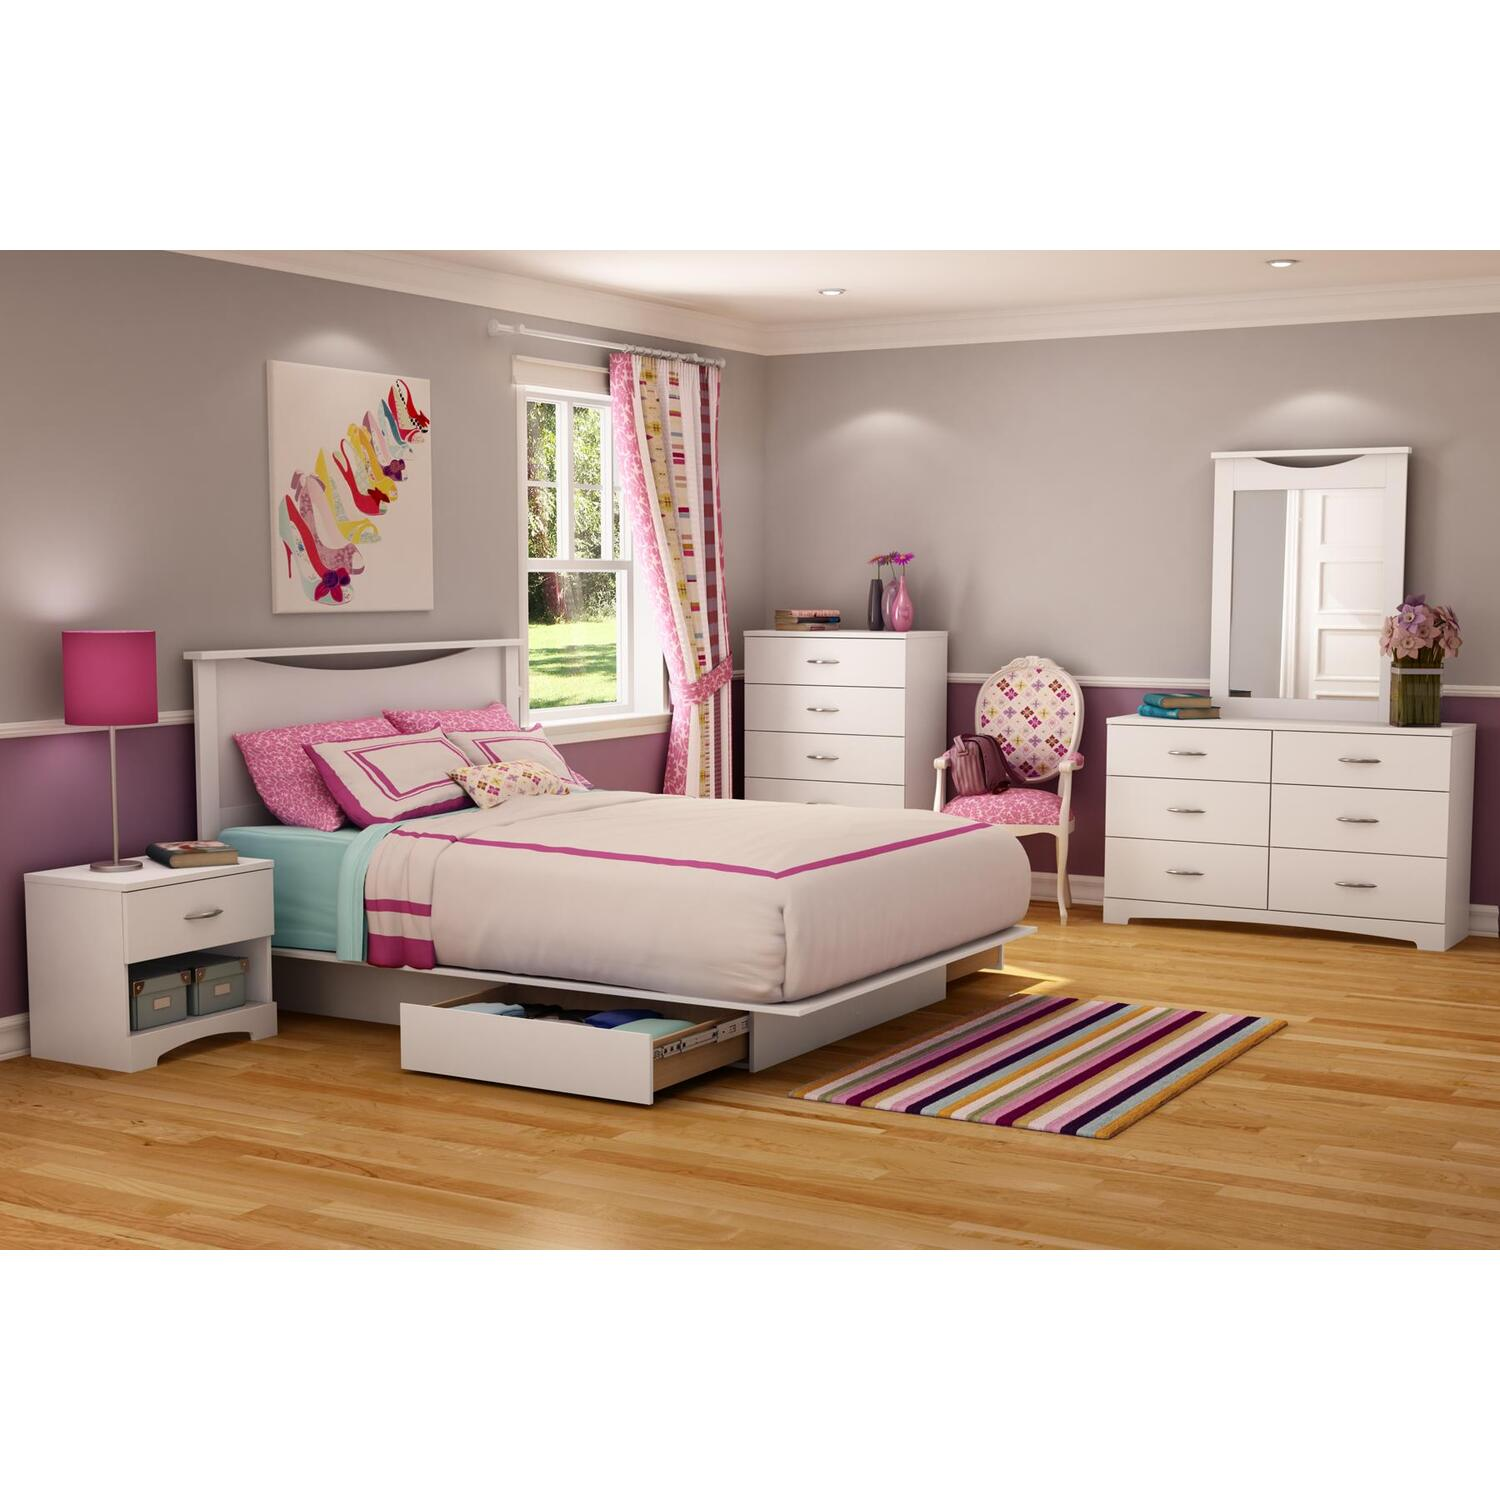 Step one full queen 6 piece bedroom set in pure white for White full bedroom furniture sets